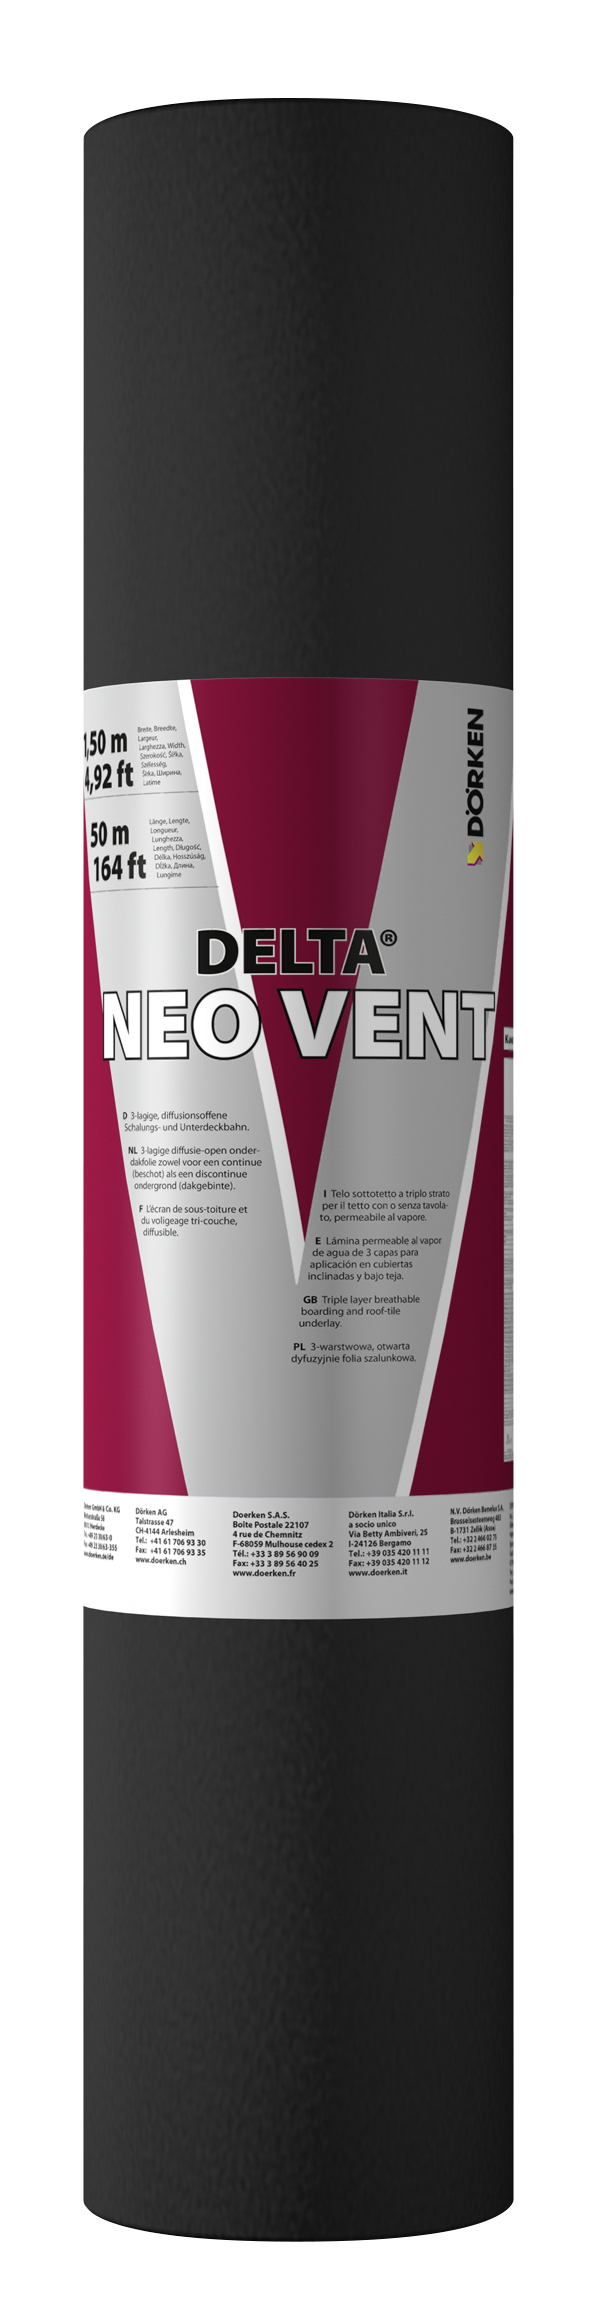 doerken ecran de sous toiture delta neo vent hpv r2 50 ml x 1 5 ml distriartisan. Black Bedroom Furniture Sets. Home Design Ideas